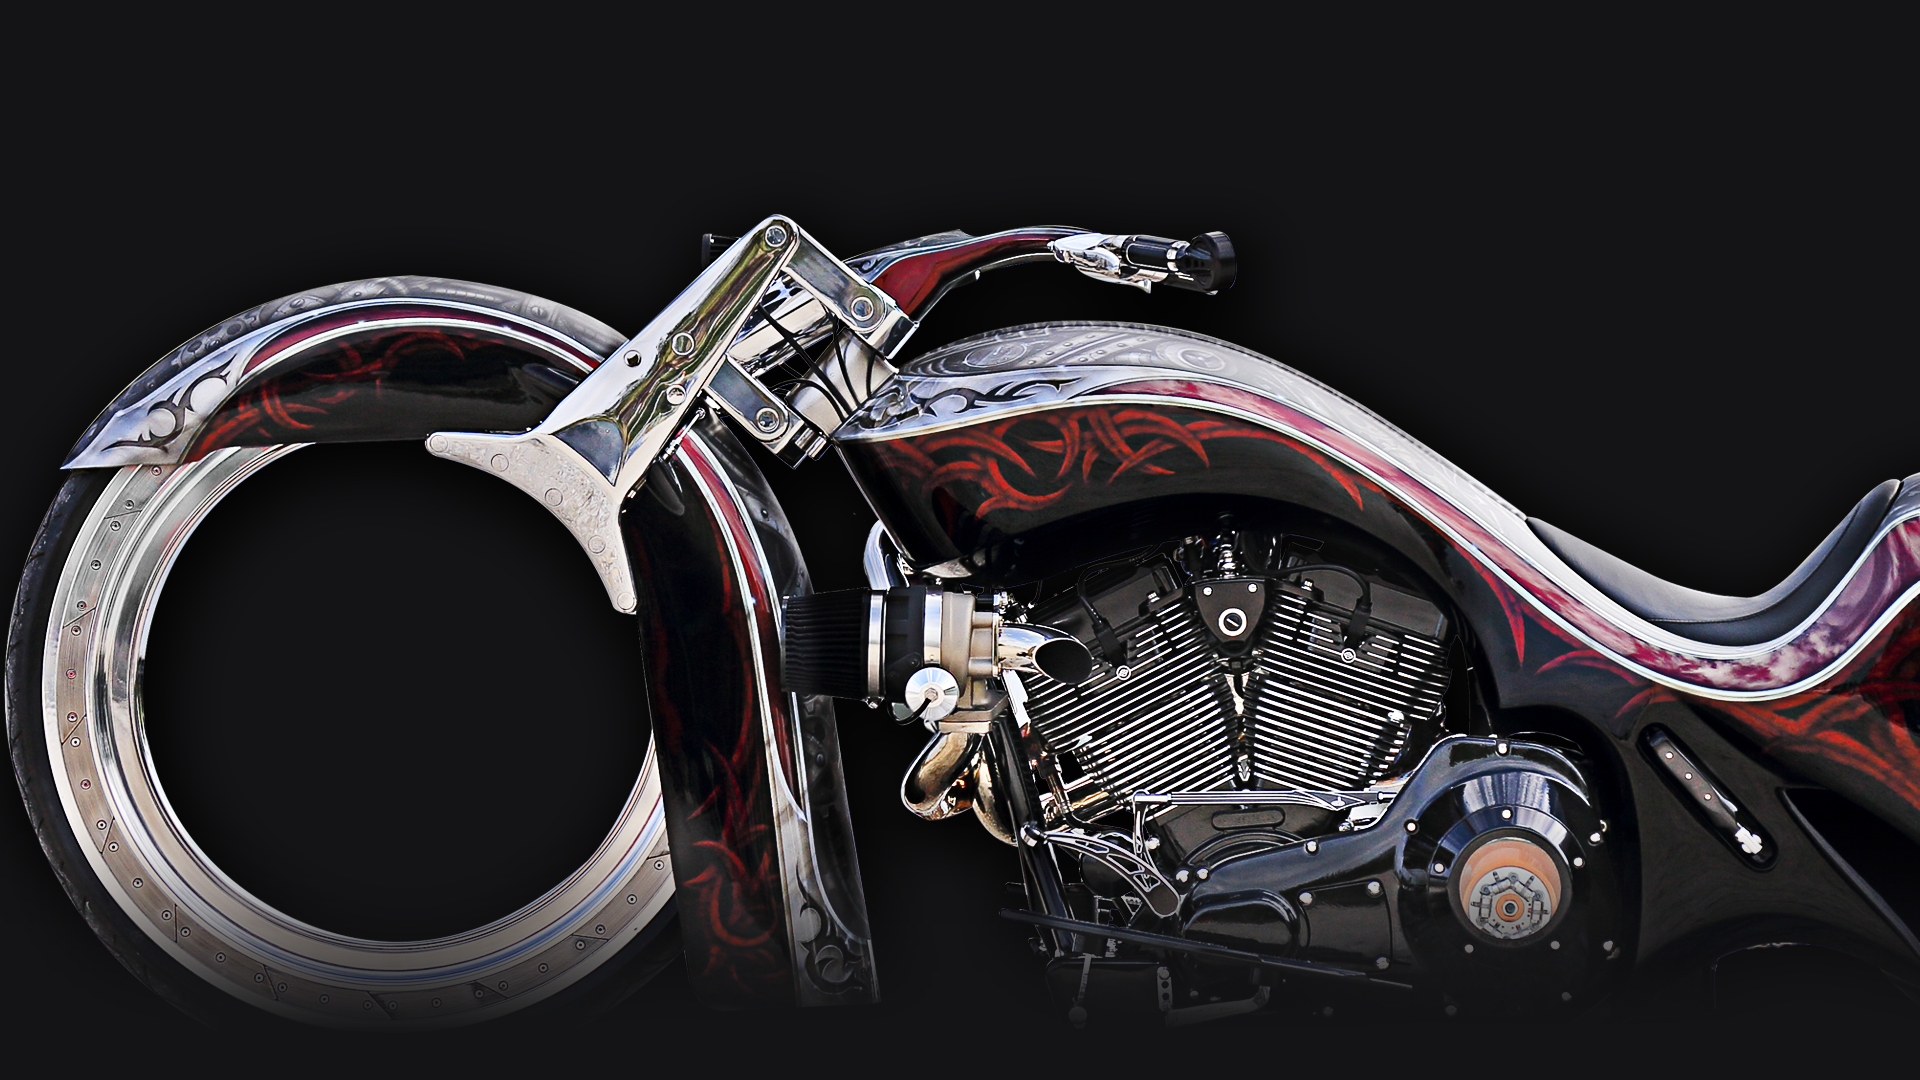 THE HIGHEST QUALITY CUSTOM BAGGERS PARTS